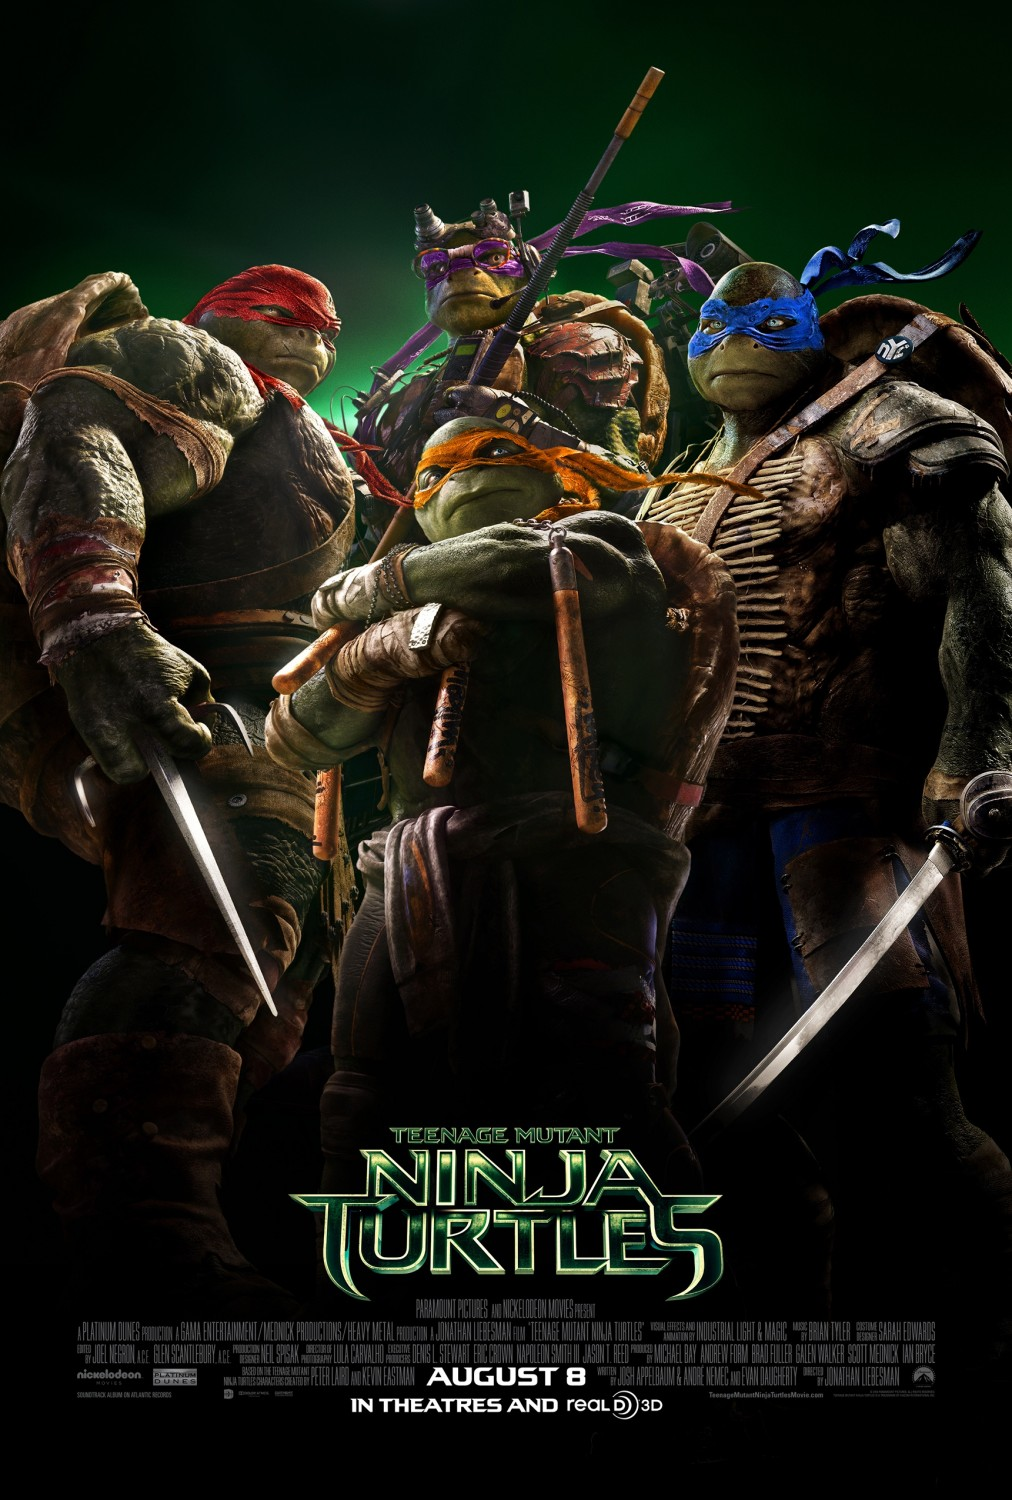 teenage_mutant_ninja_turtles_ver15_xlg.jpg